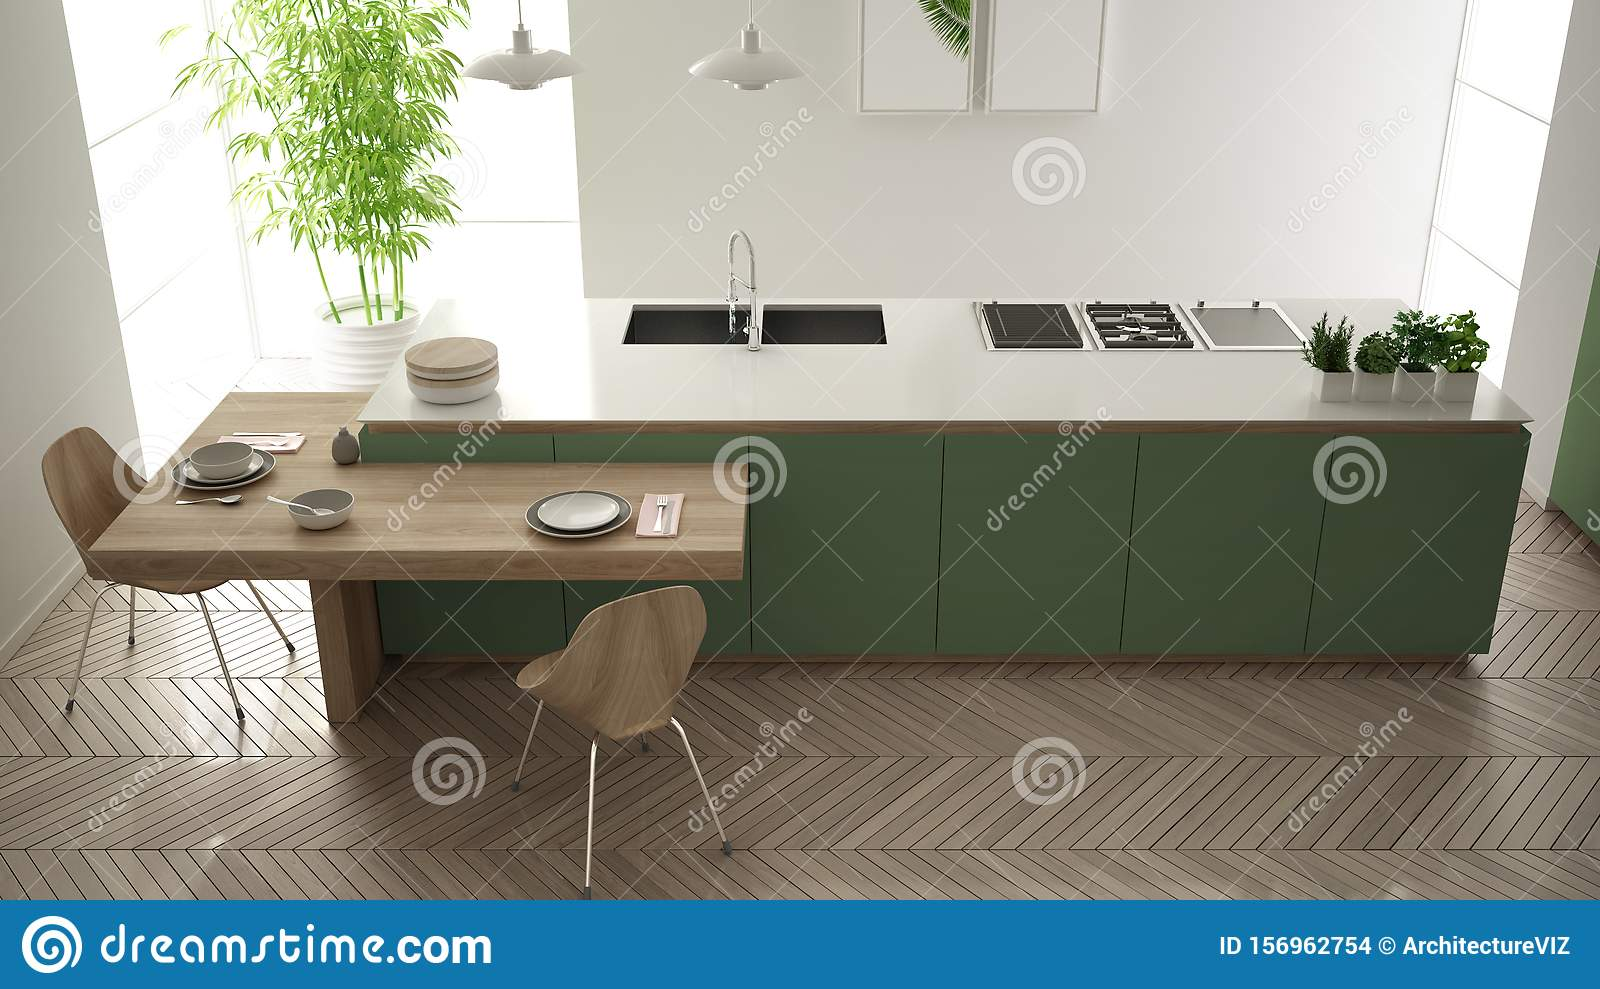 Modern Clean Contemporary Green Kitchen Island And Wooden Dining Table With Chairs Bamboo And Potted Plants Big Window And Stock Illustration Illustration Of Cozy Gray 156962754